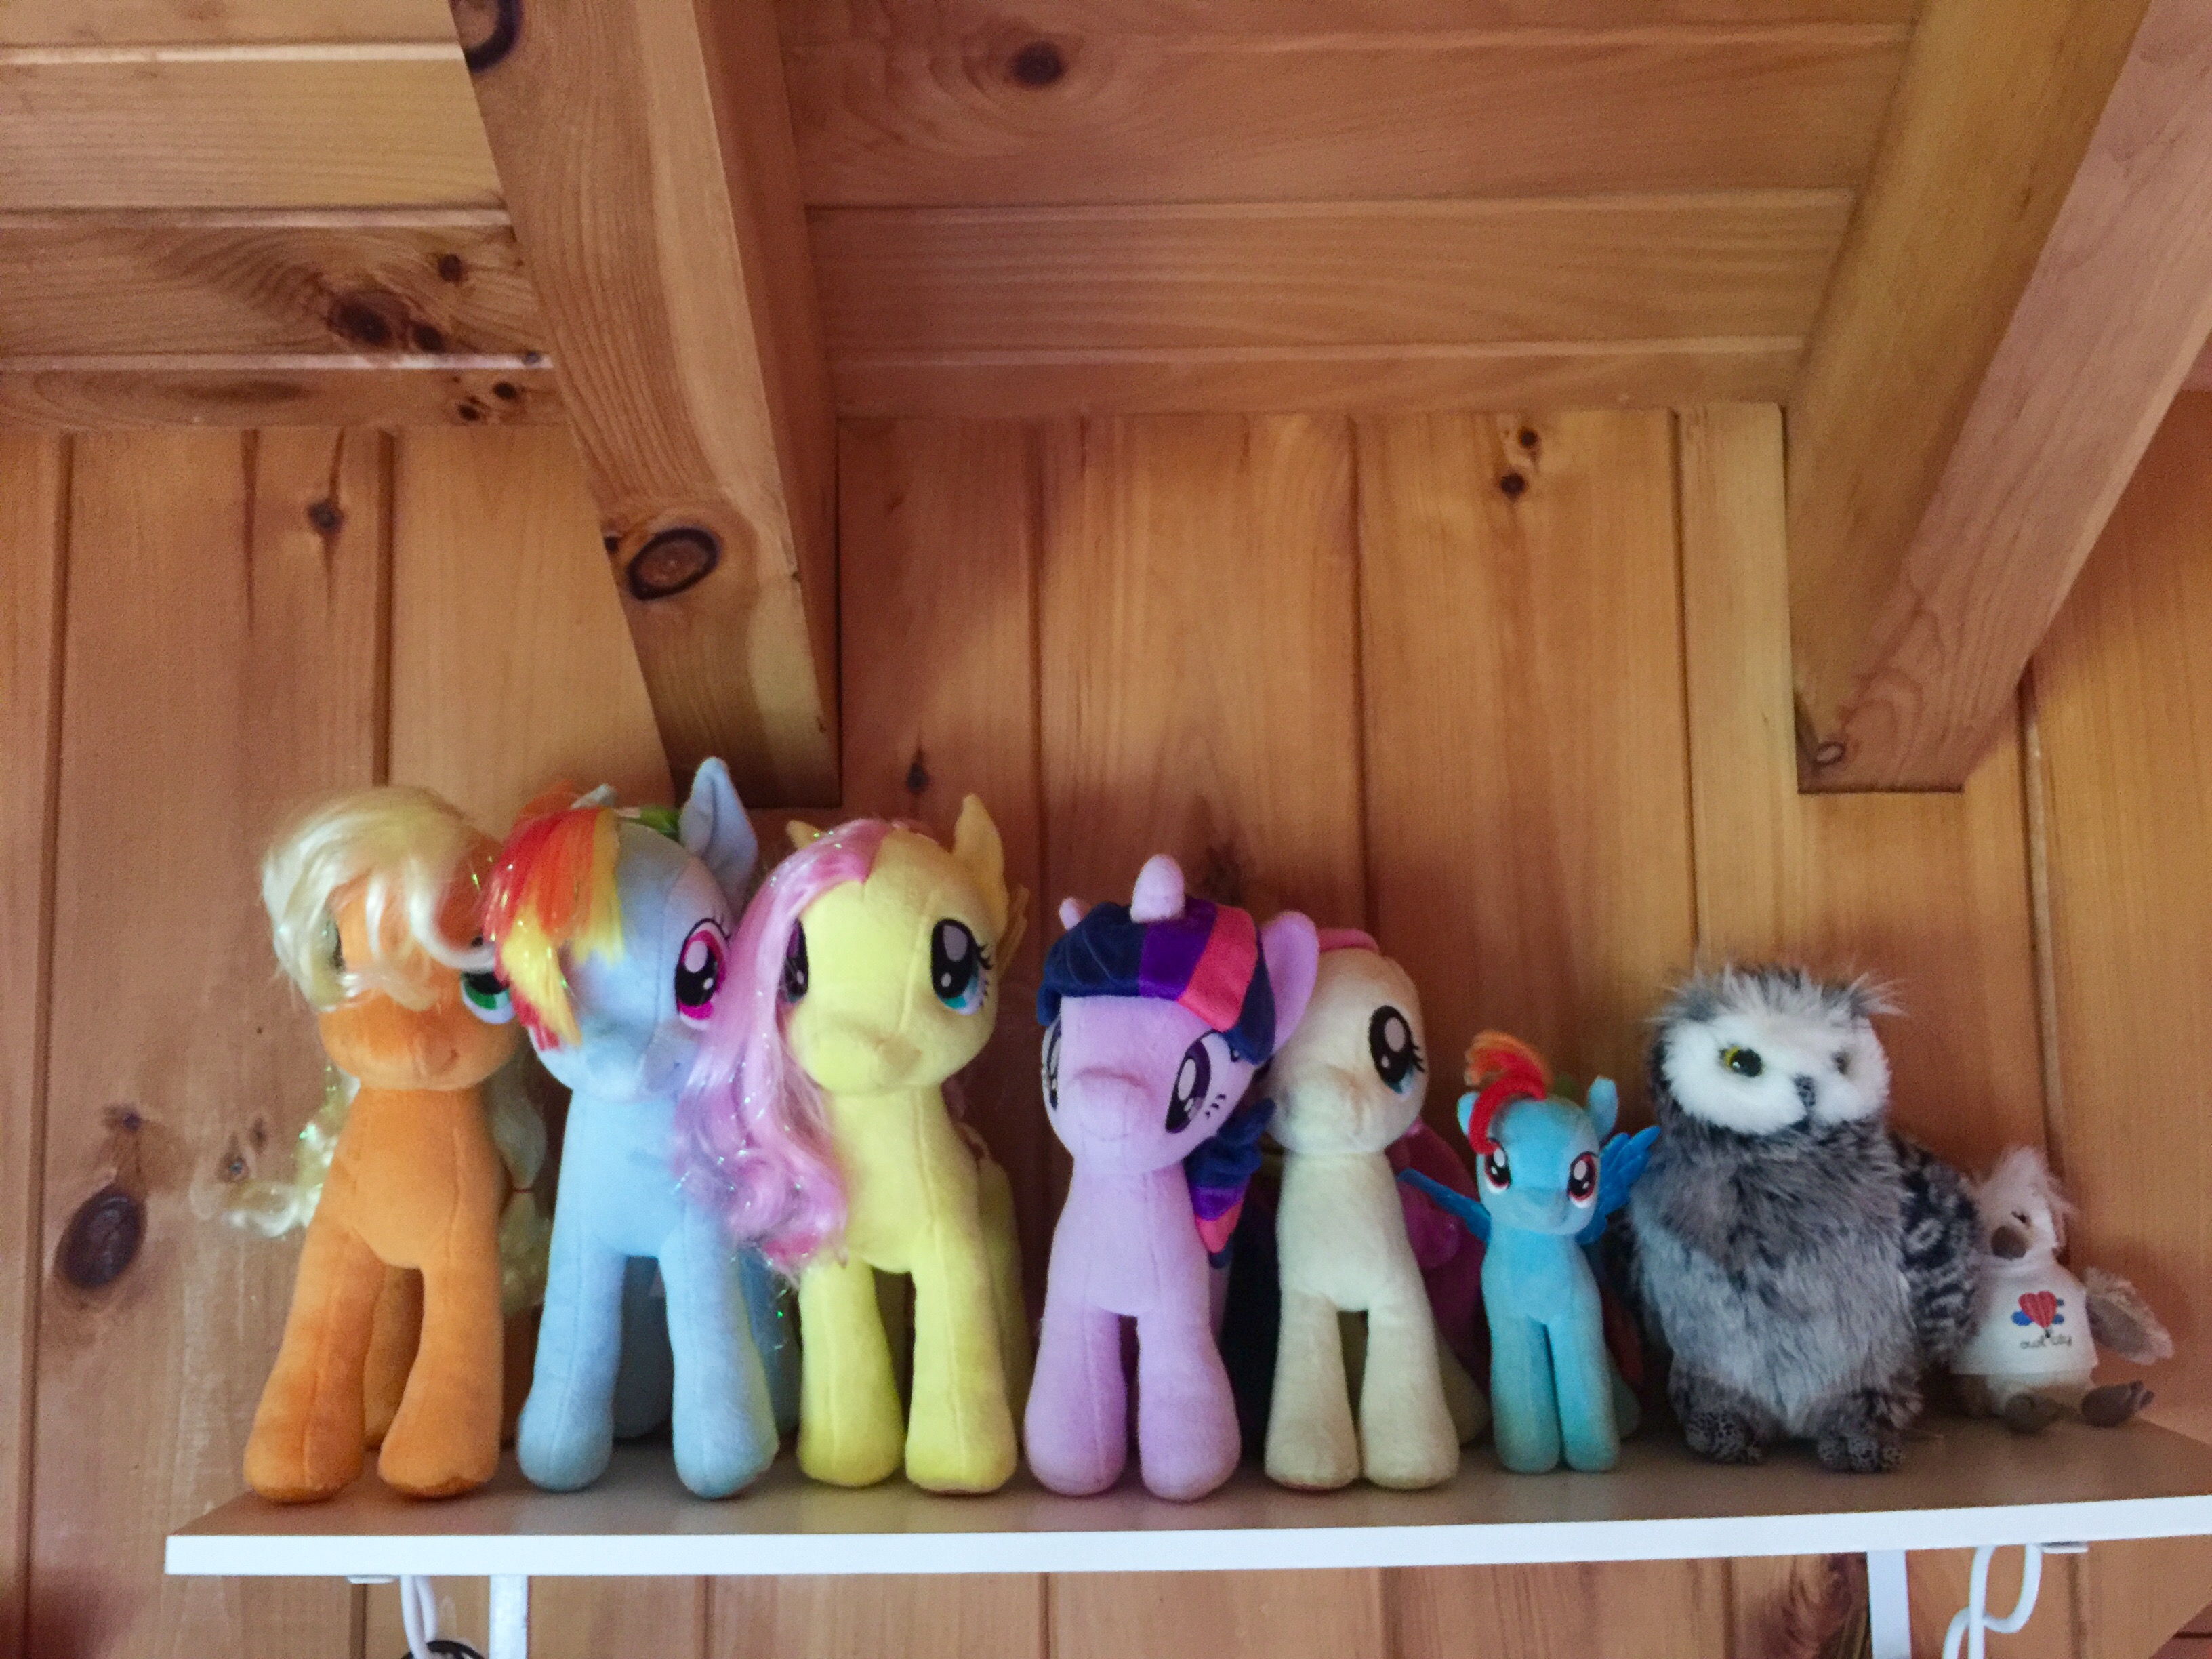 f108f77db88 How many plushies do you own (do not count duplicates of a character ...